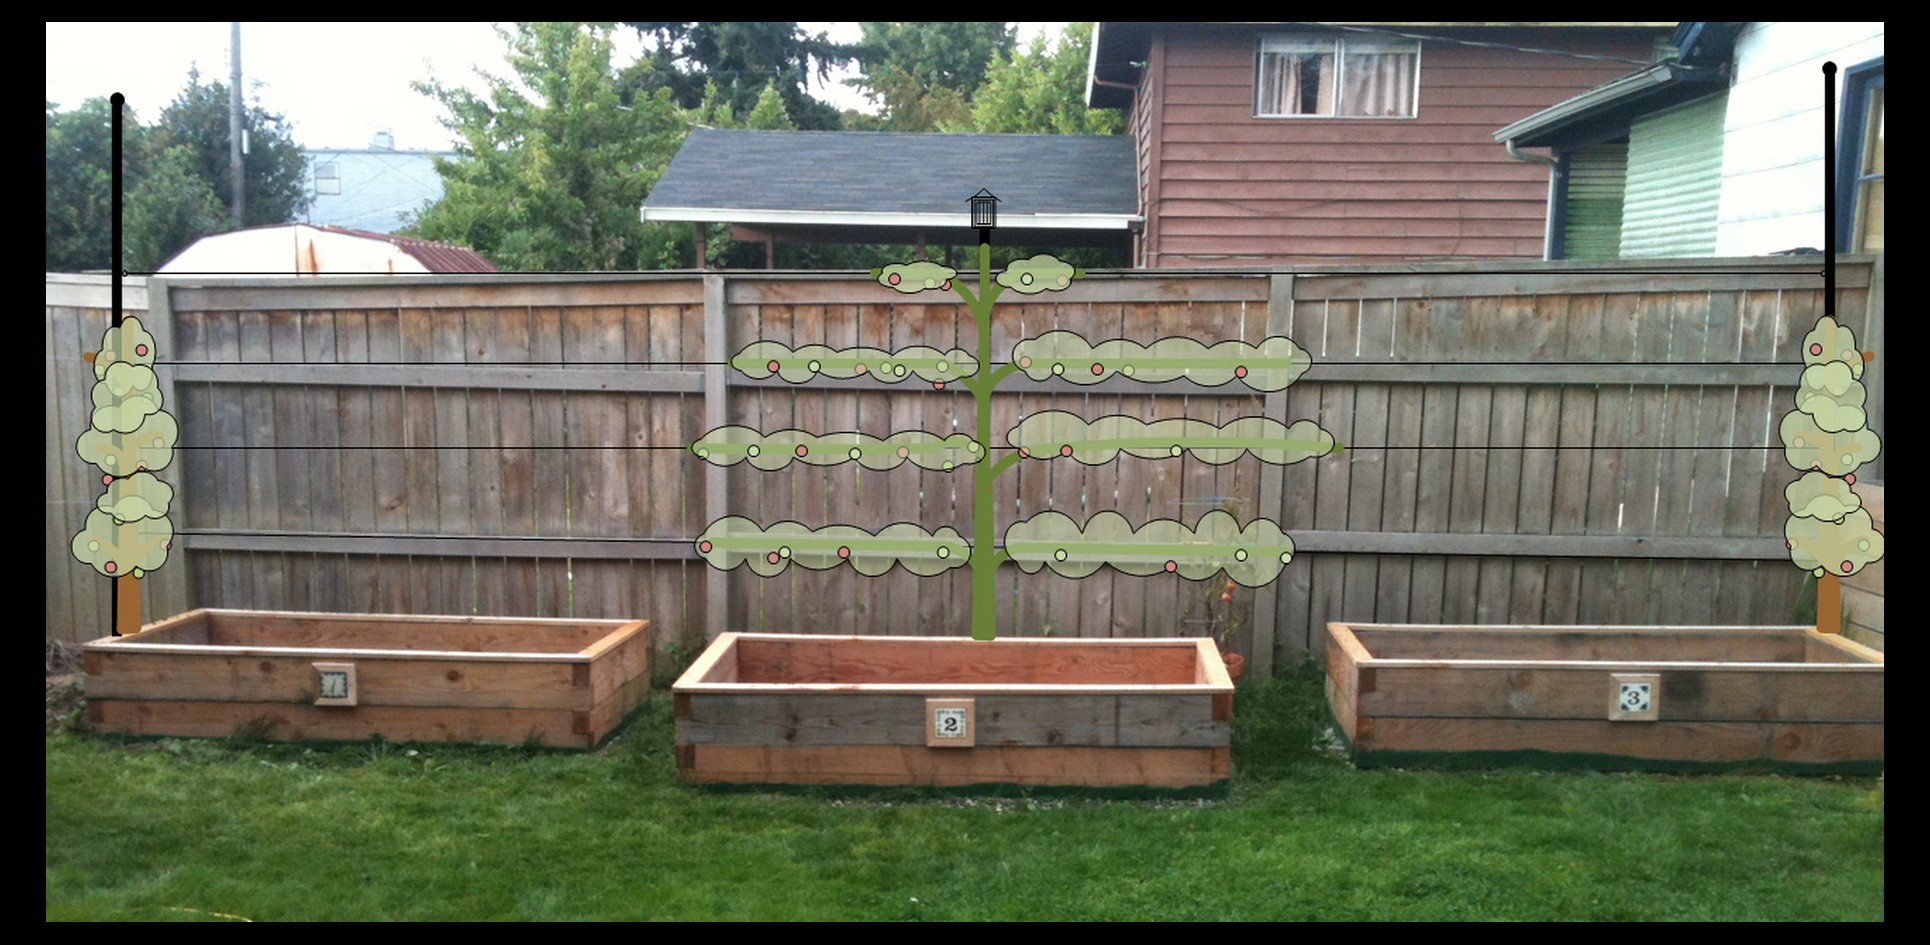 How To Build A Container Garden